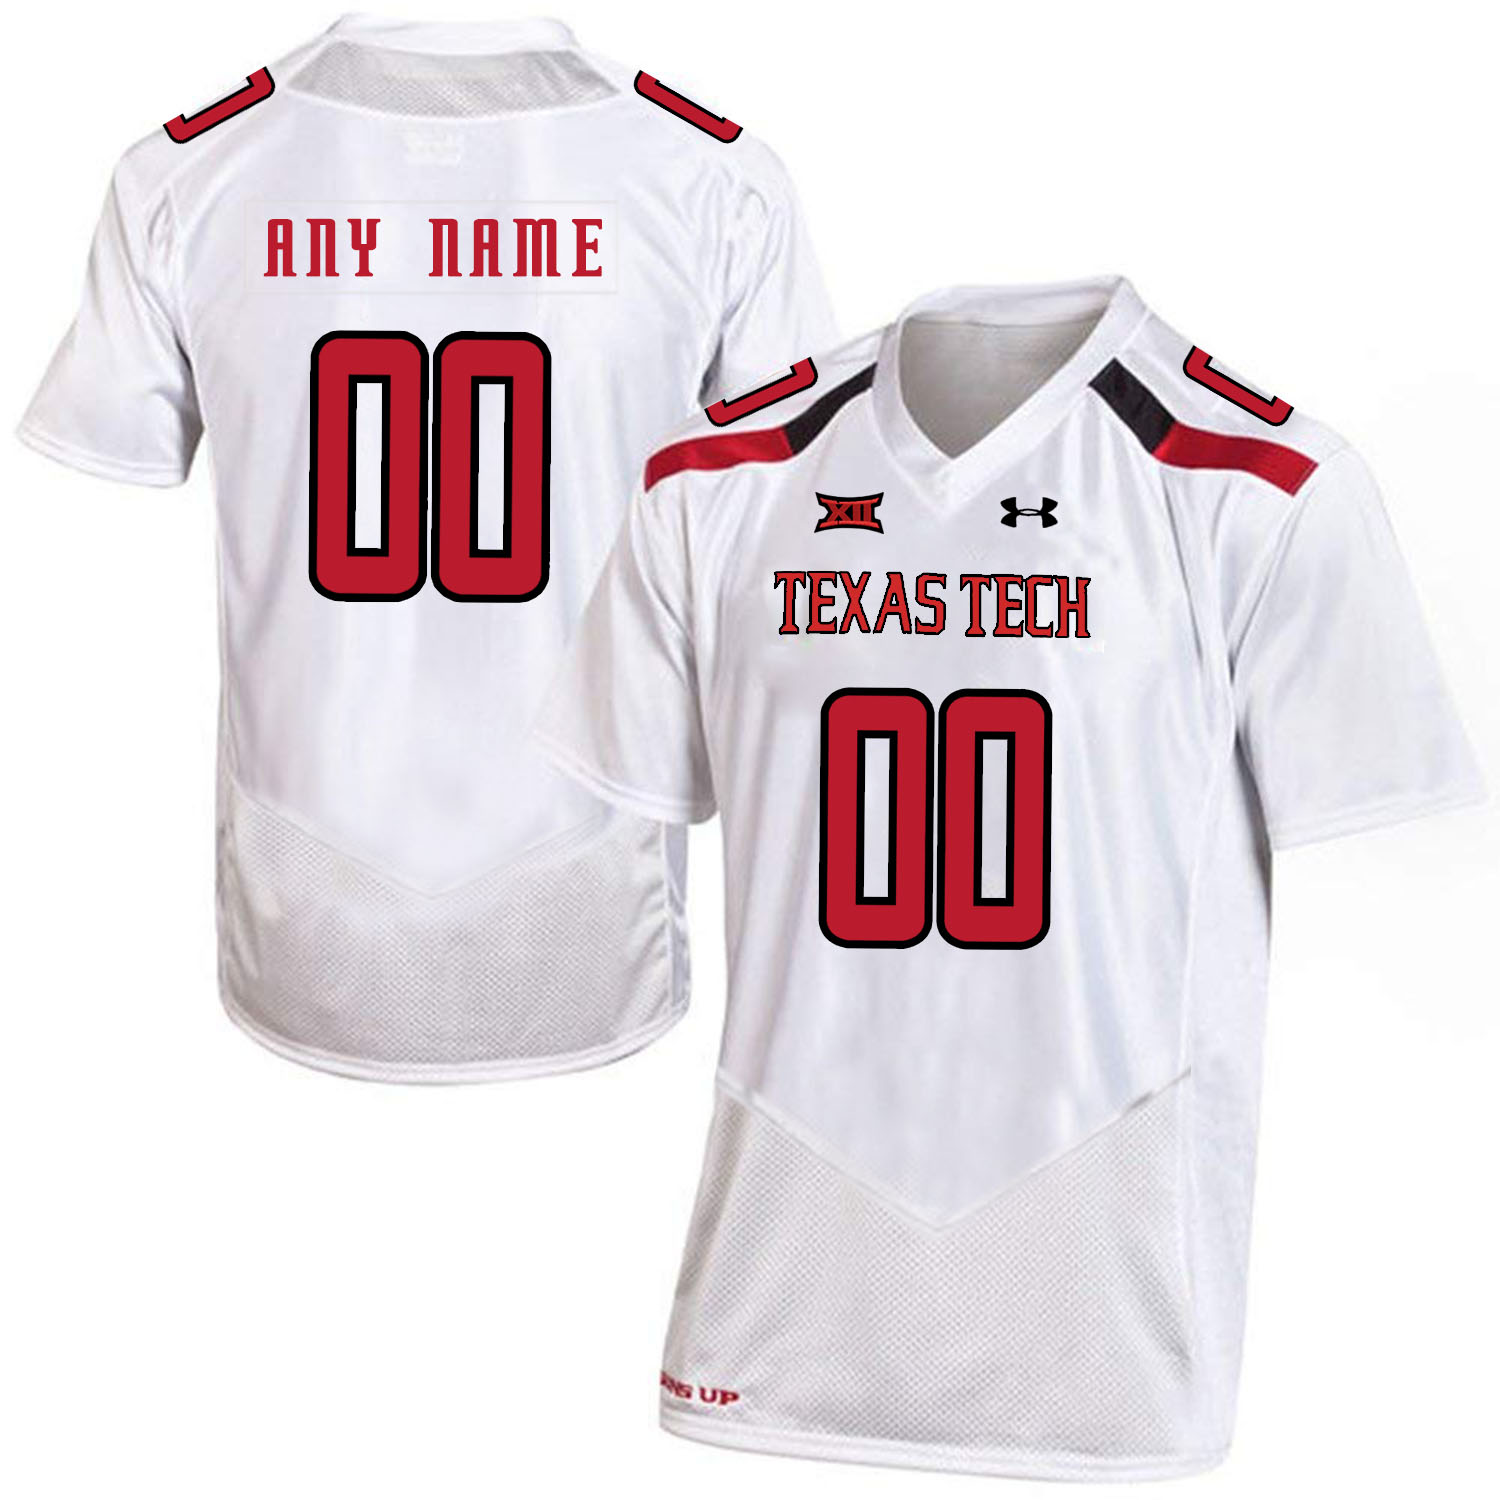 Texas Tech Red Raiders White Men's Customized College Football Jersey